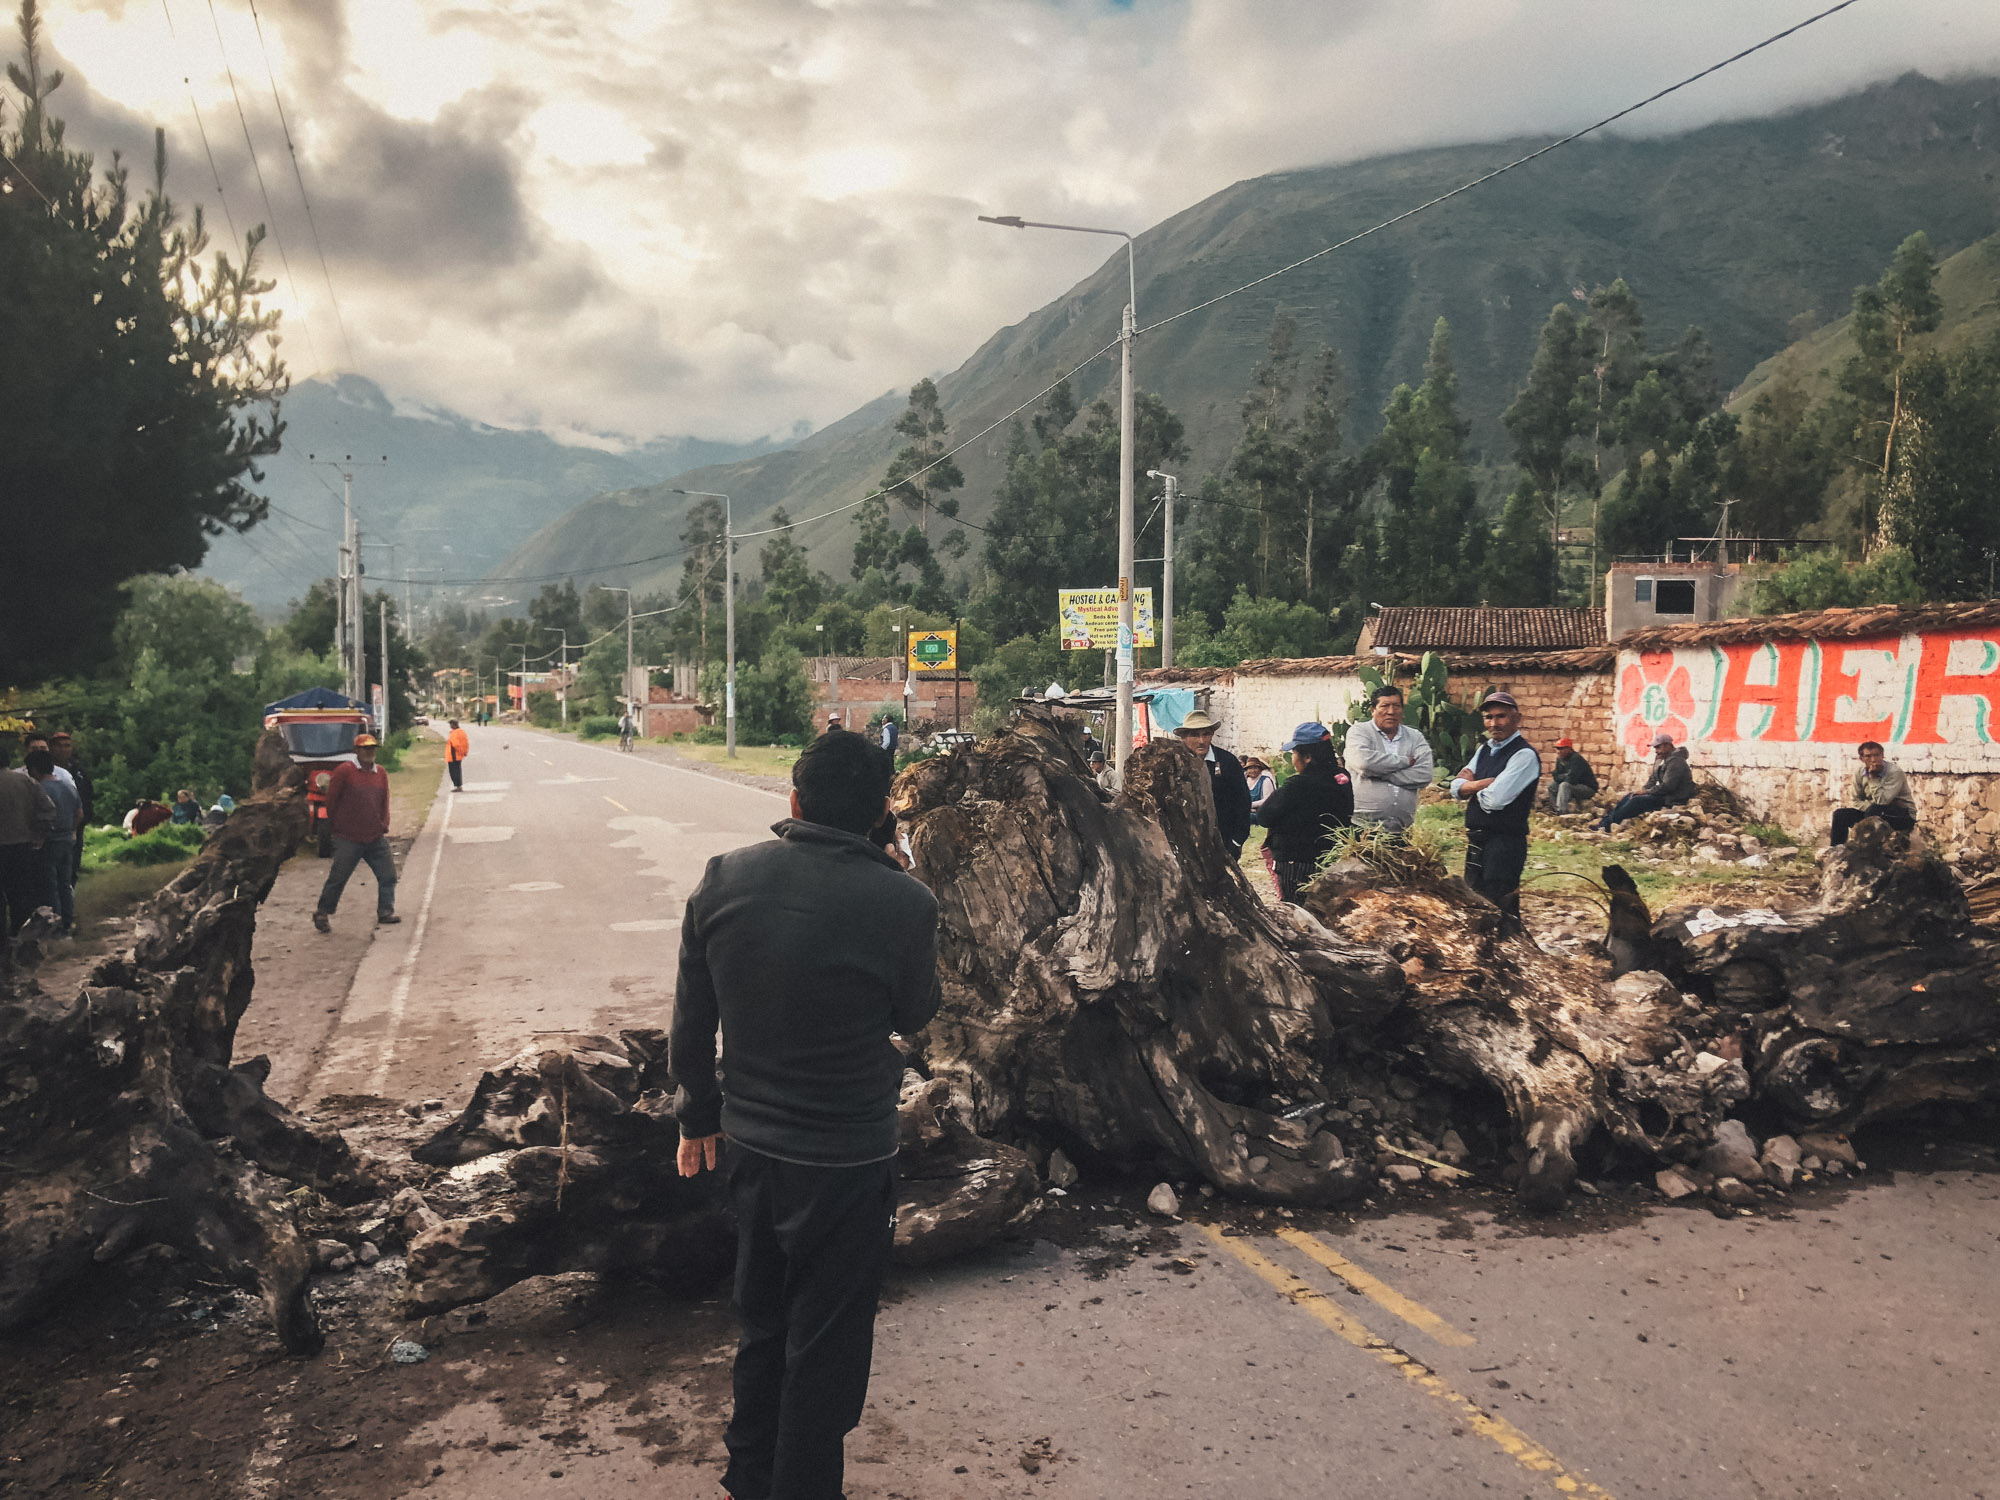 Road block near Urubamba